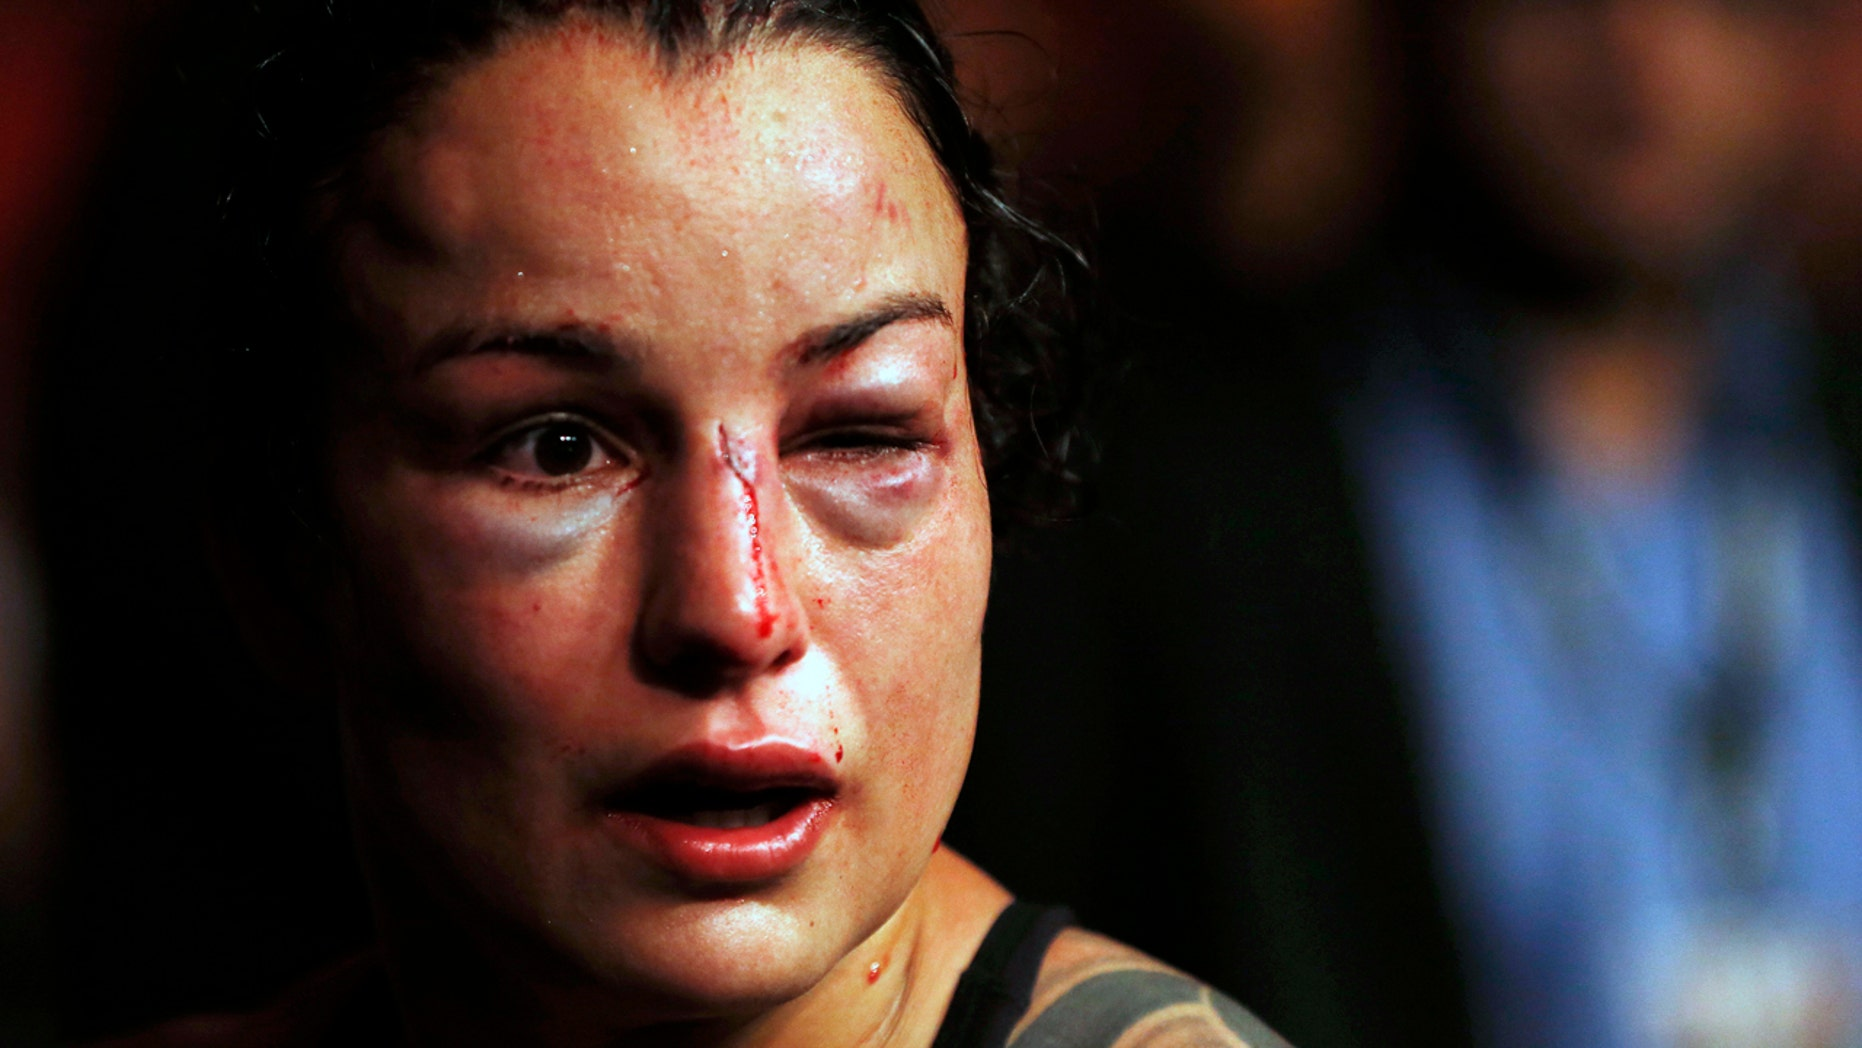 Raquel Pennington was beaten bloody by Amanda Nunes in their bantamweight title fight Saturday in Rio de Janeiro.